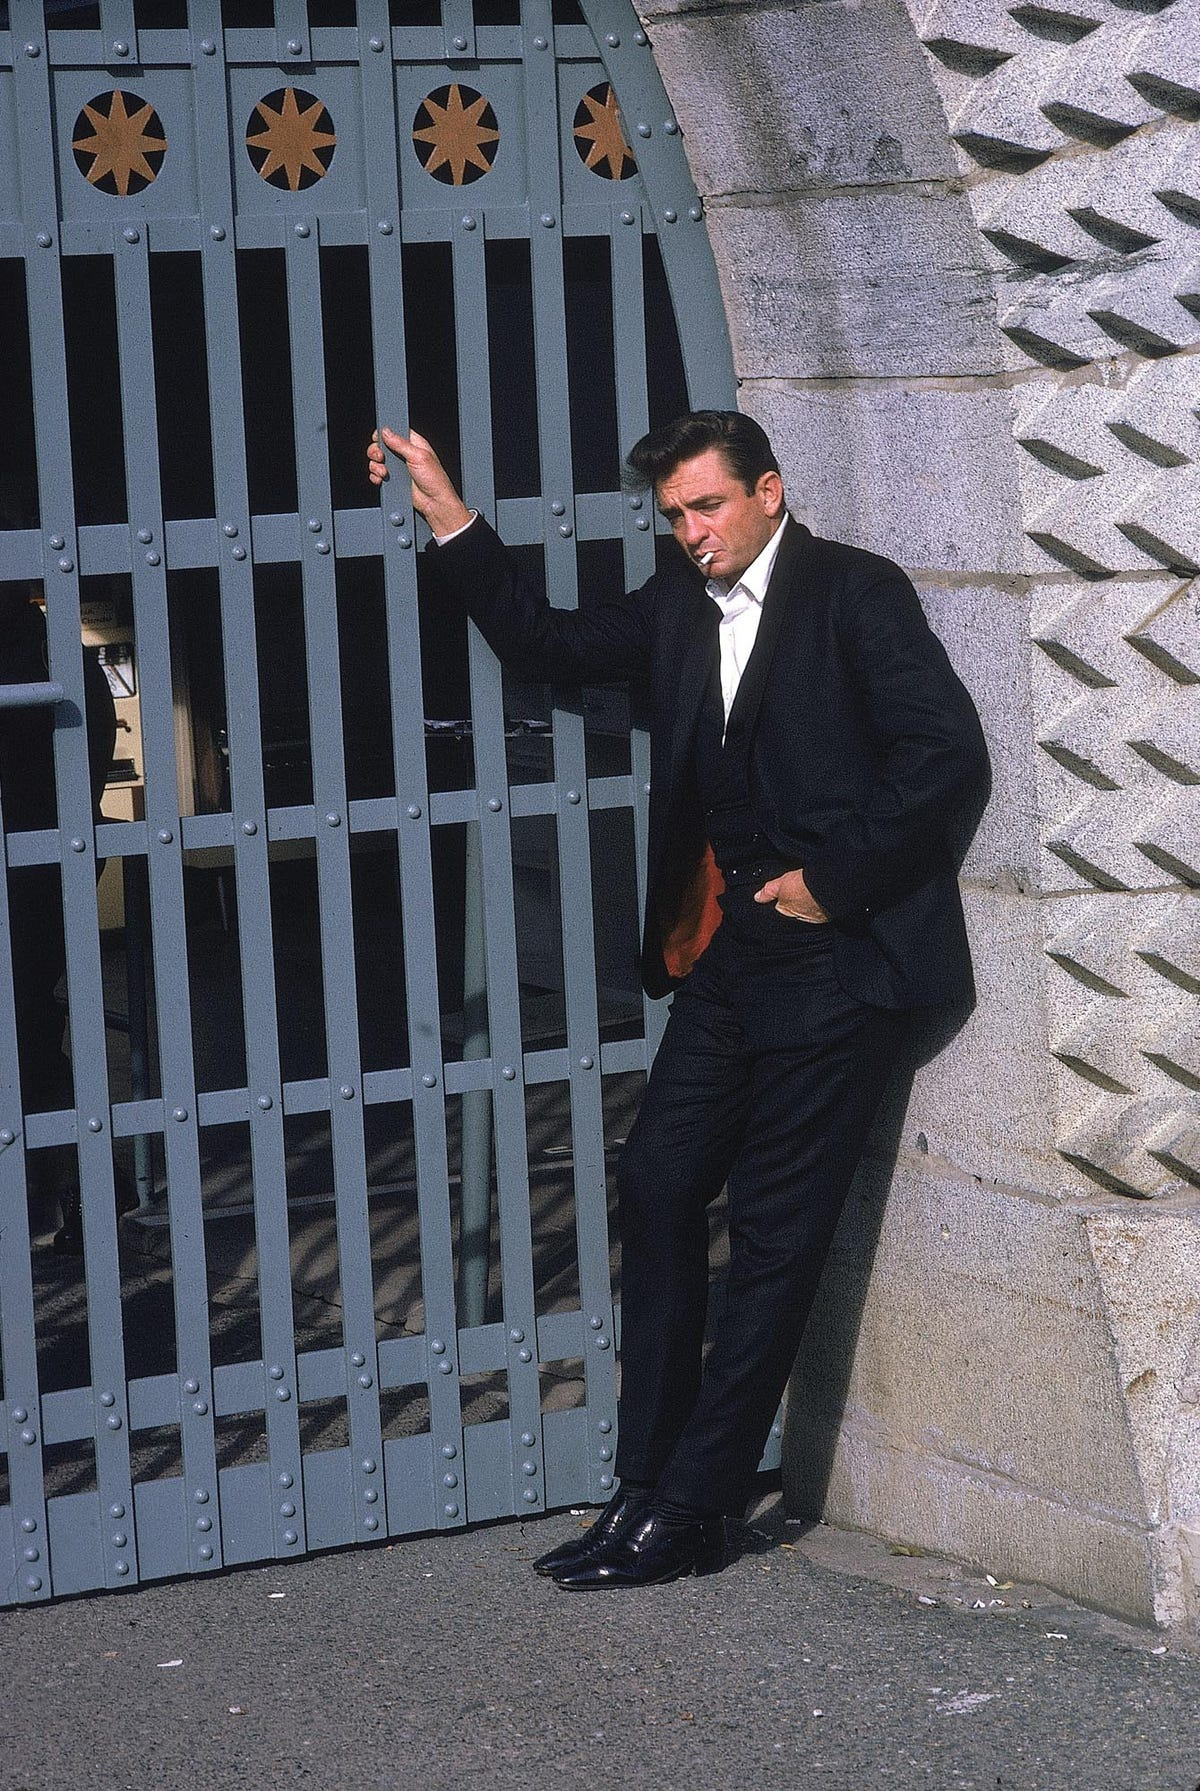 At Folsom Prison' at 50: Why it's still Johnny Cash's best album